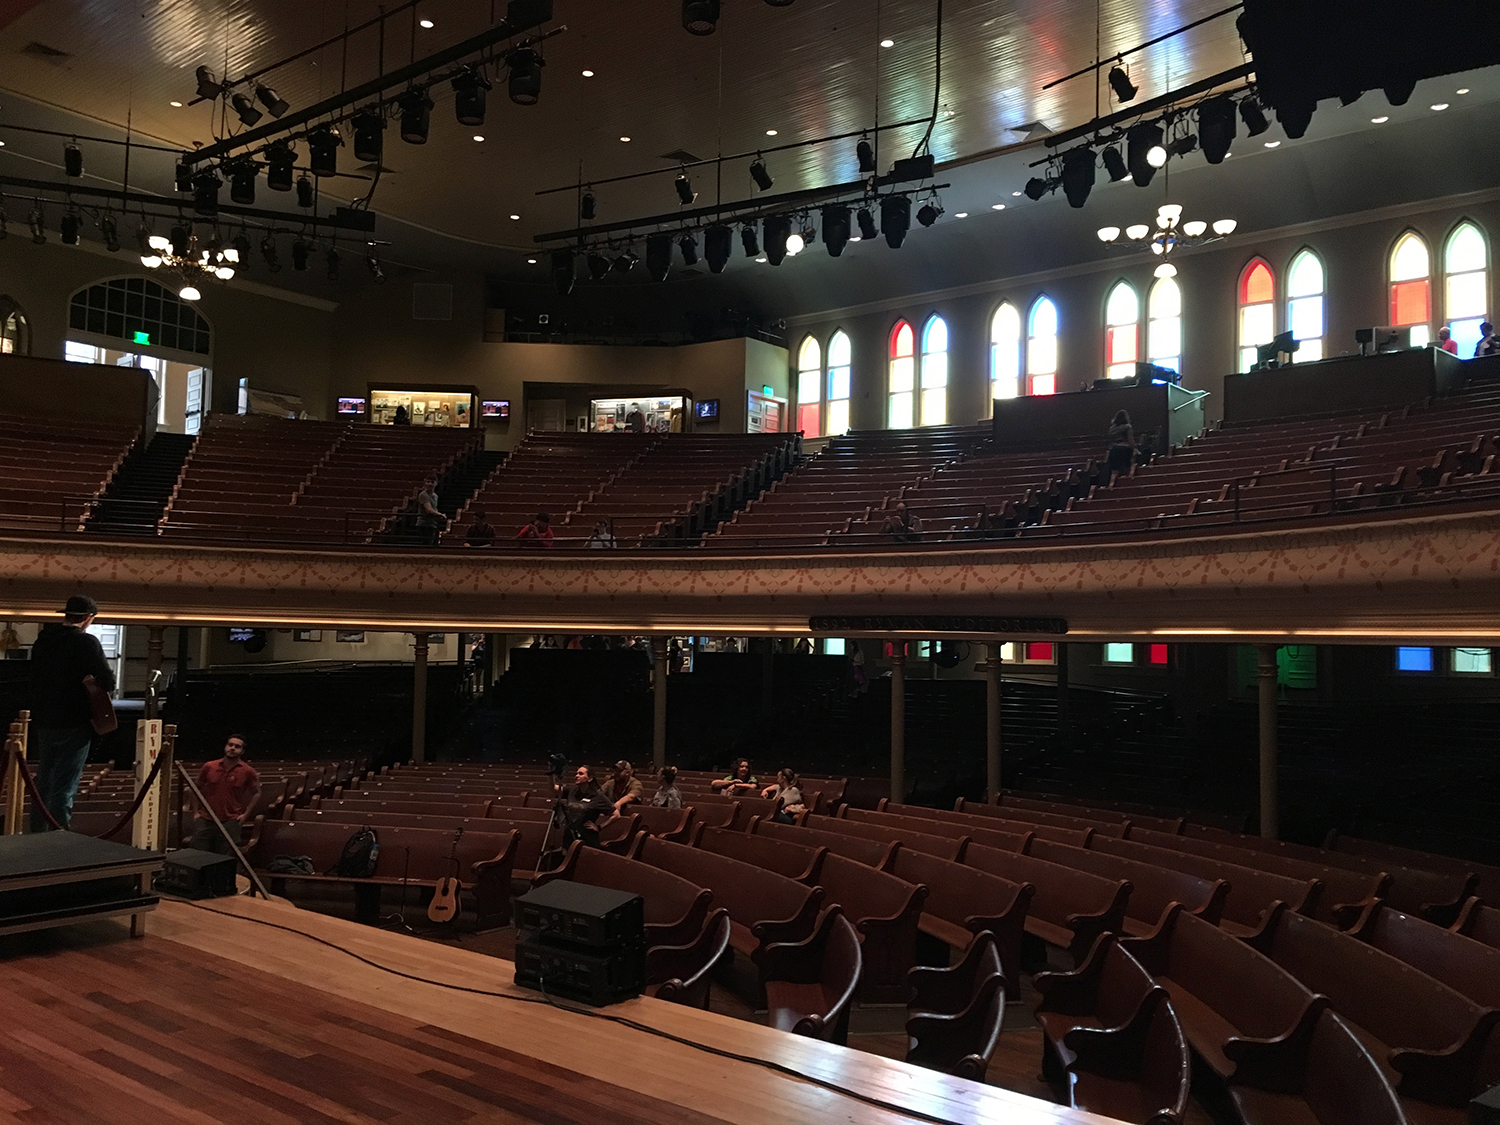 View of the Ryman auditorium from the stage wings.